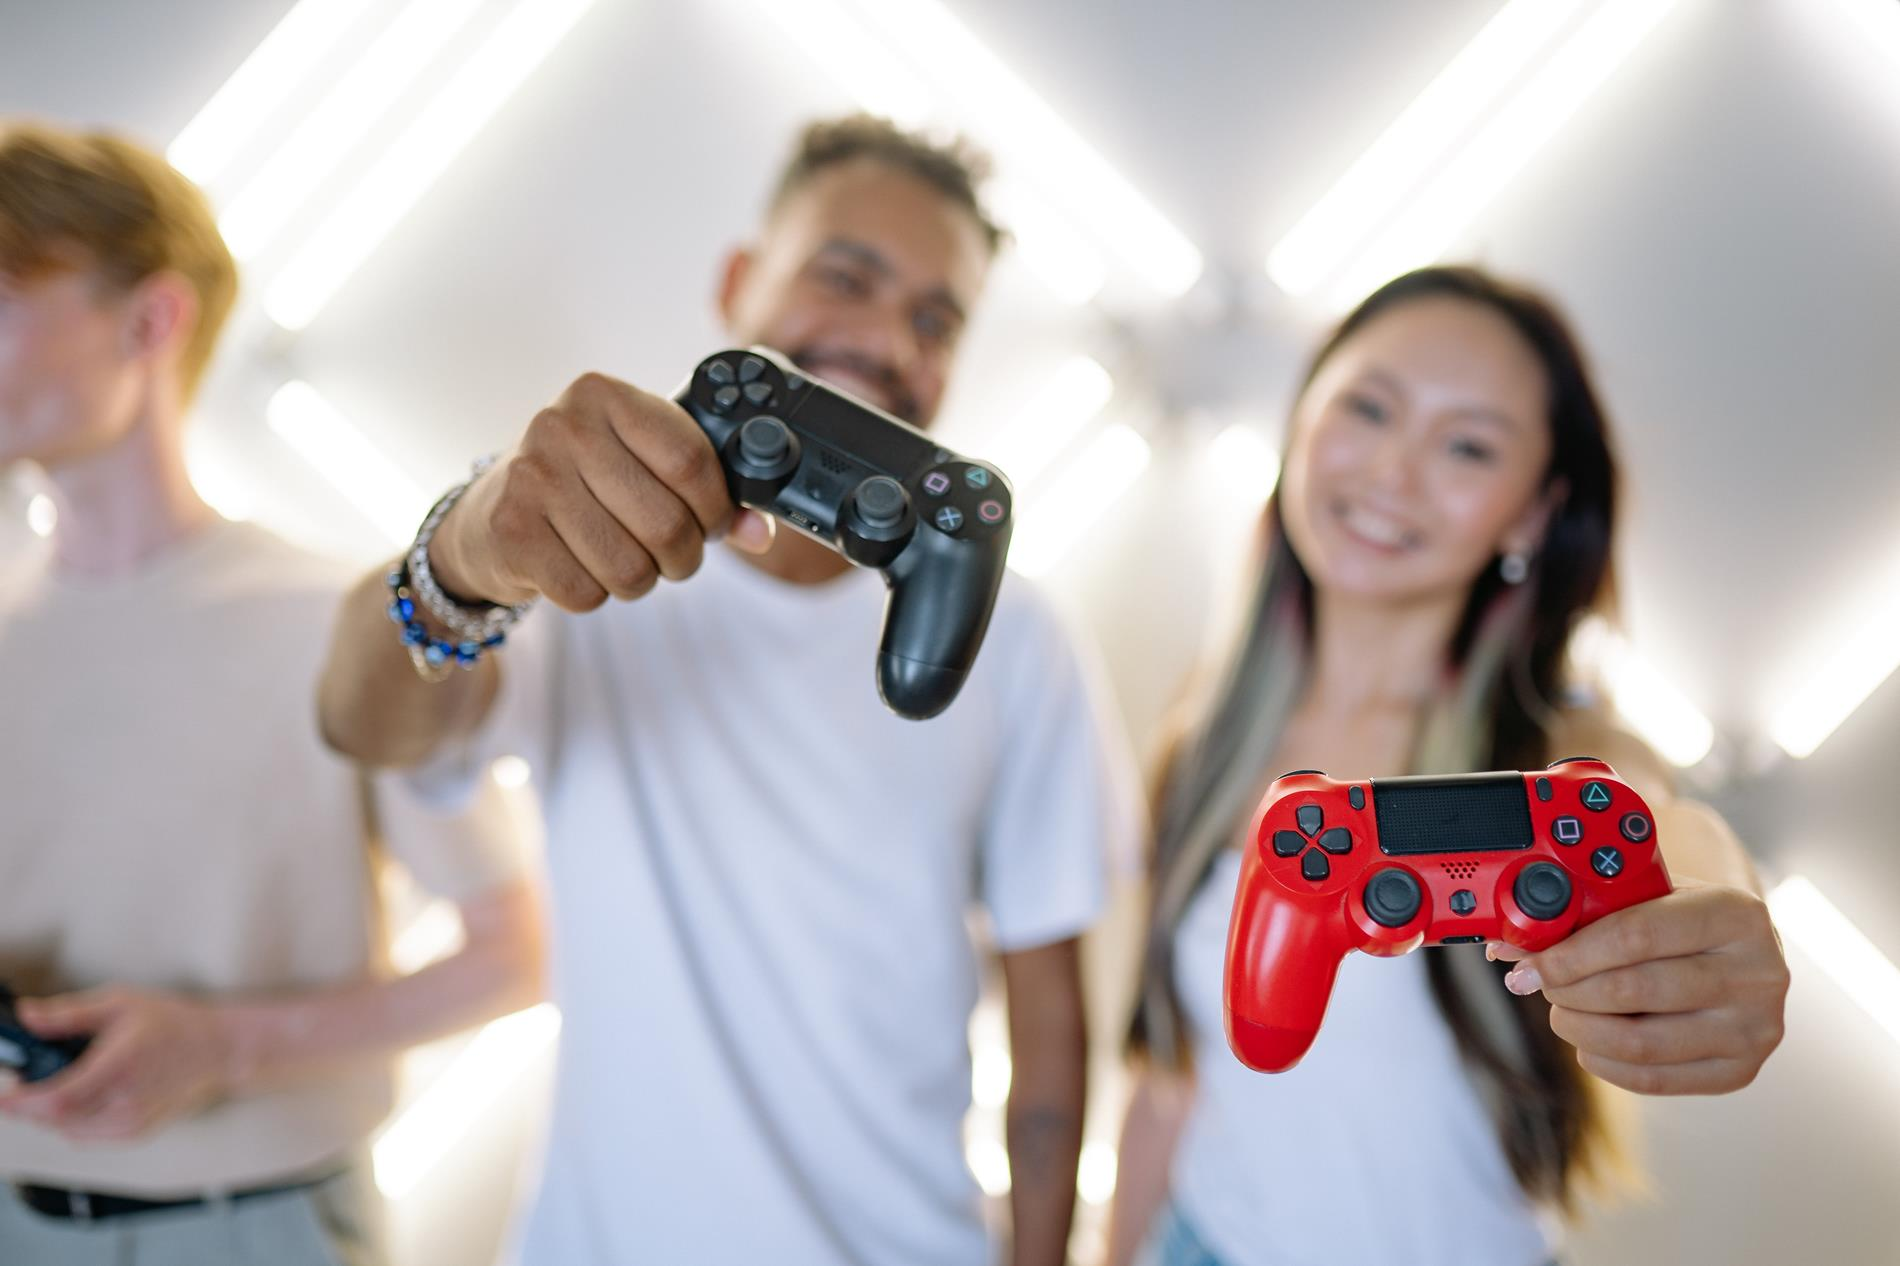 A male and female student stand in the background, blurred, holding playstation controllers out in front of themselves towards the camera